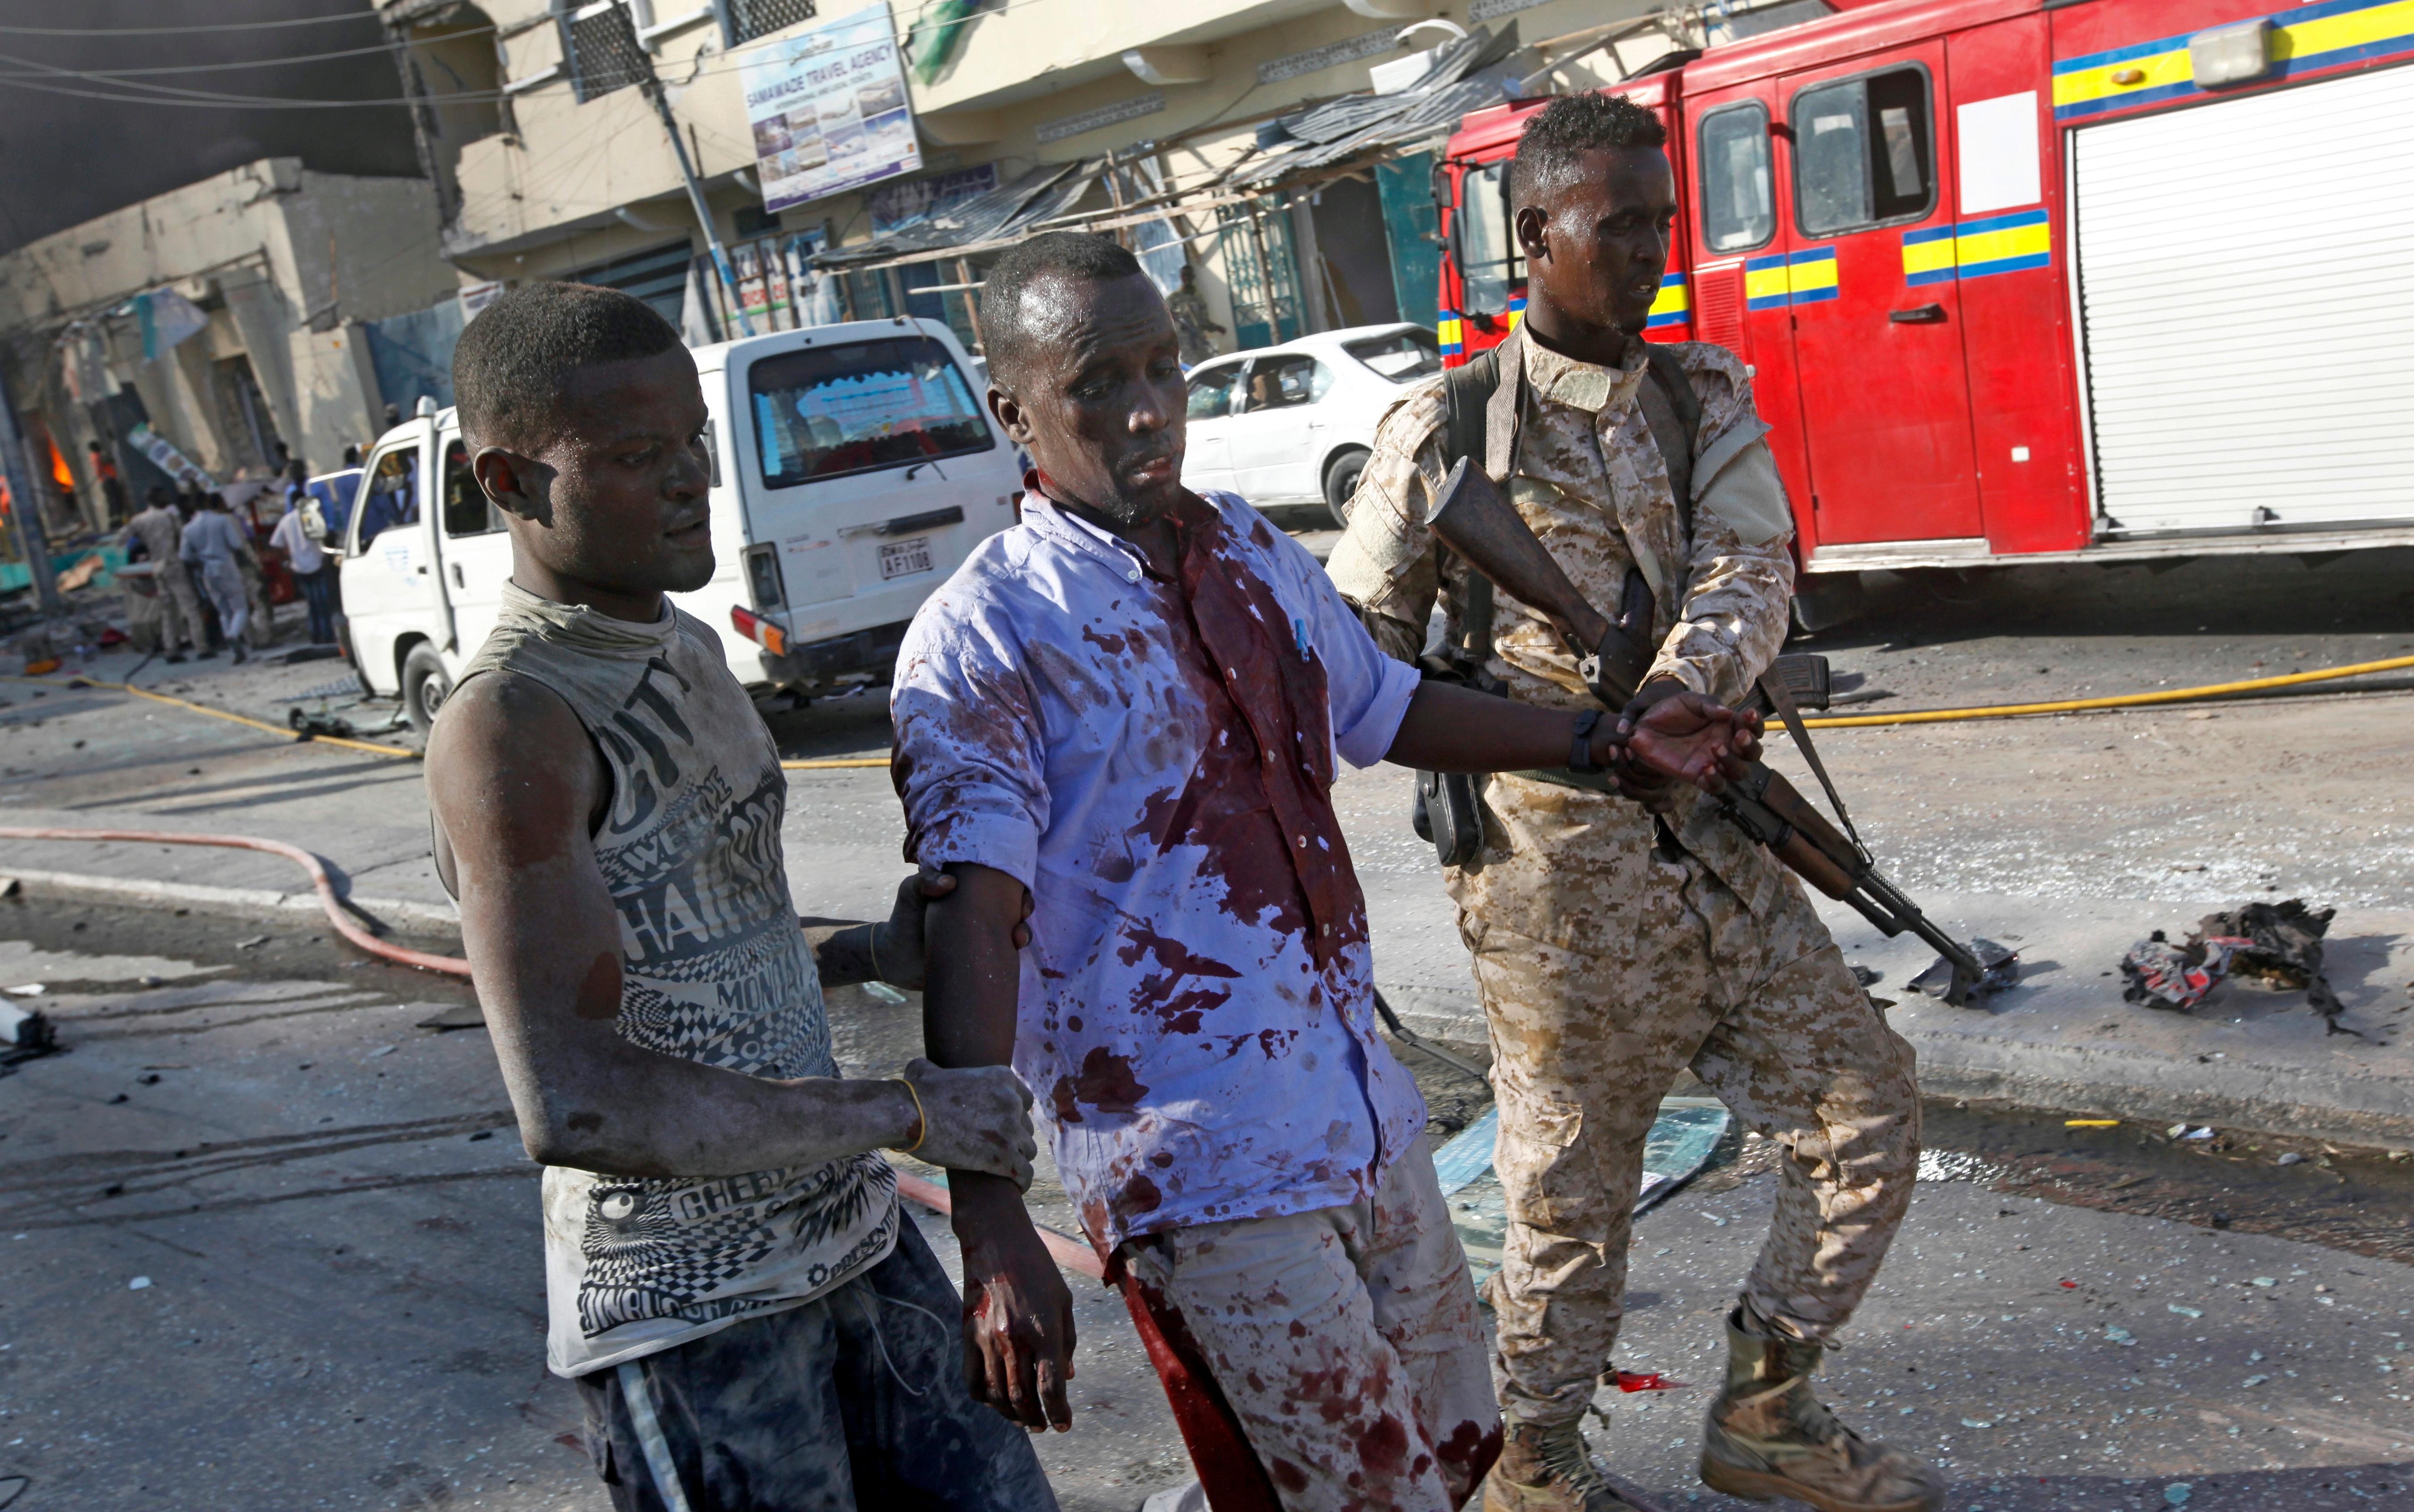 A Somali soldier helps a civilian wounded in a blast in the capital Mogadishu, Somalia Saturday, Oct. 14, 2017. A huge explosion from a truck bomb has killed at least 20 people in Somalia's capital, police said Saturday, as shaken residents called it the most powerful blast they'd heard in years. (AP Photo/Farah Abdi Warsameh)